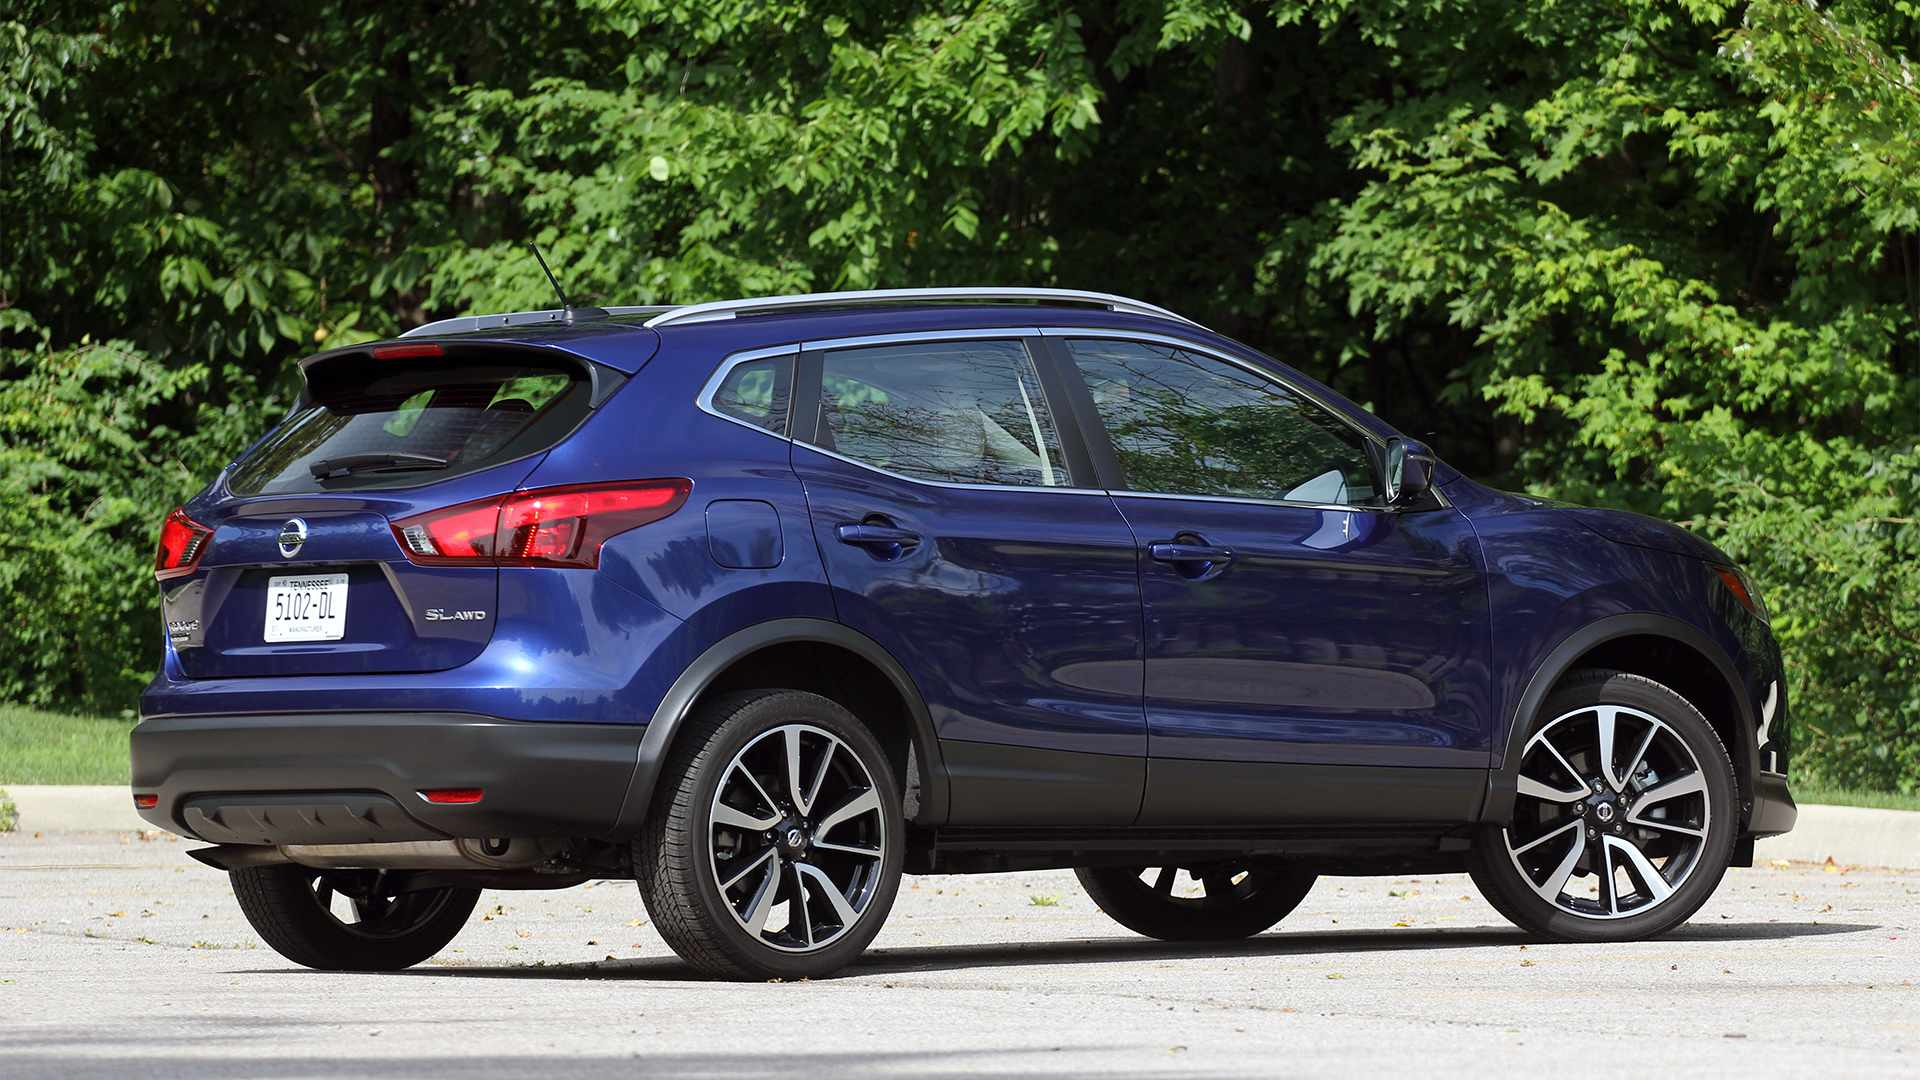 2019 Nissan Rogue Sport Sl Awd Review Middle Child Syndrome